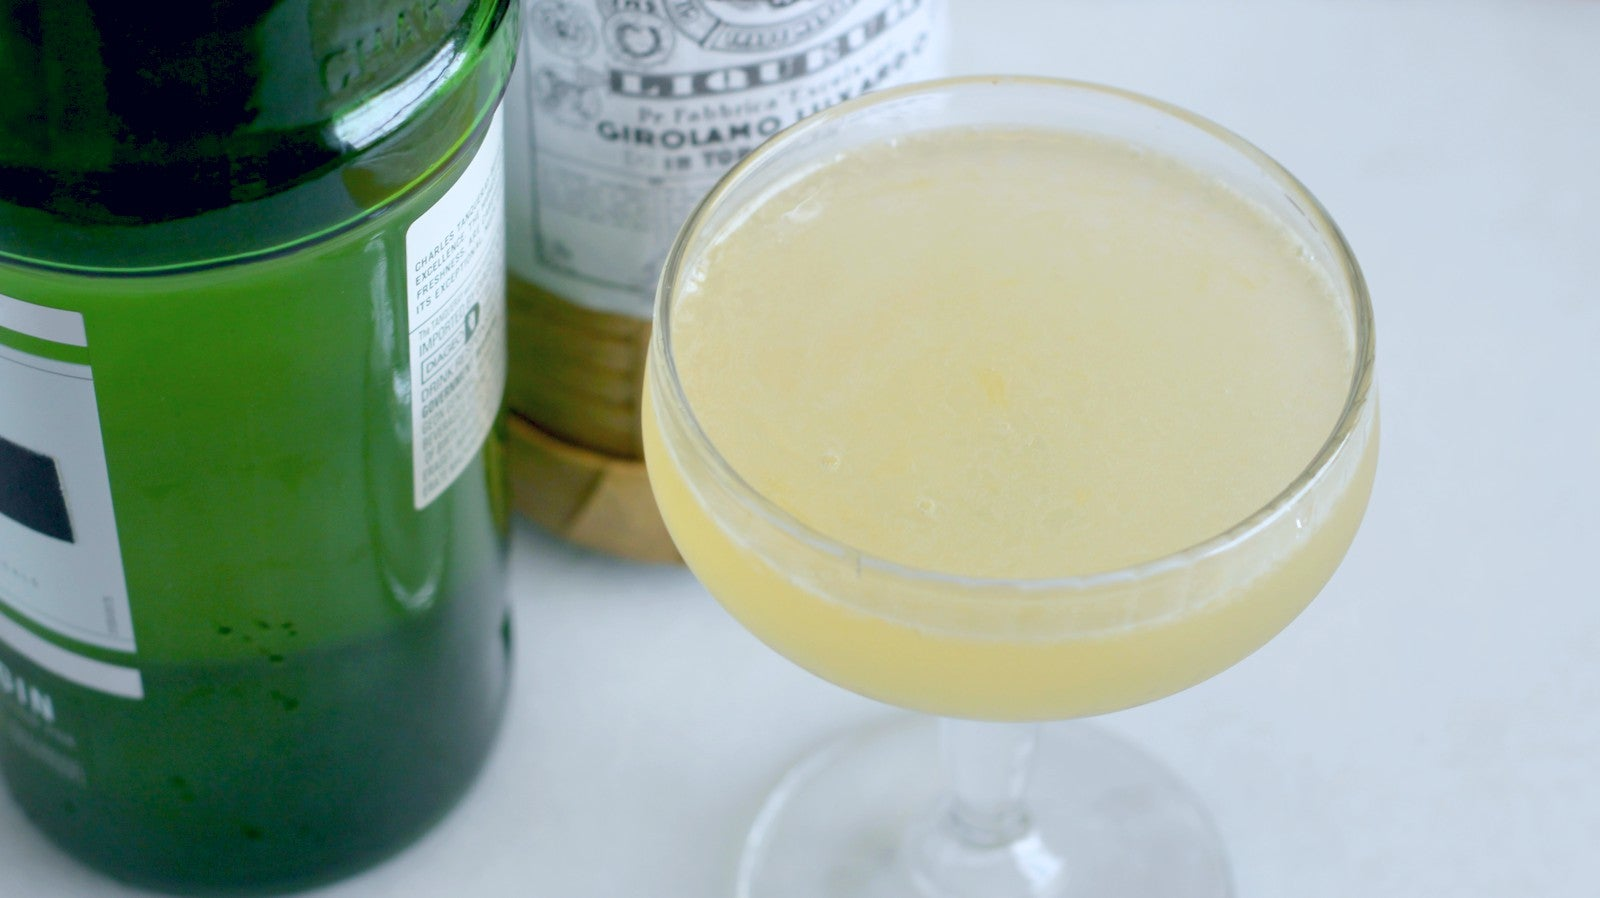 3-Ingredient Happy Hour: A Pared Down Aviation Cocktail